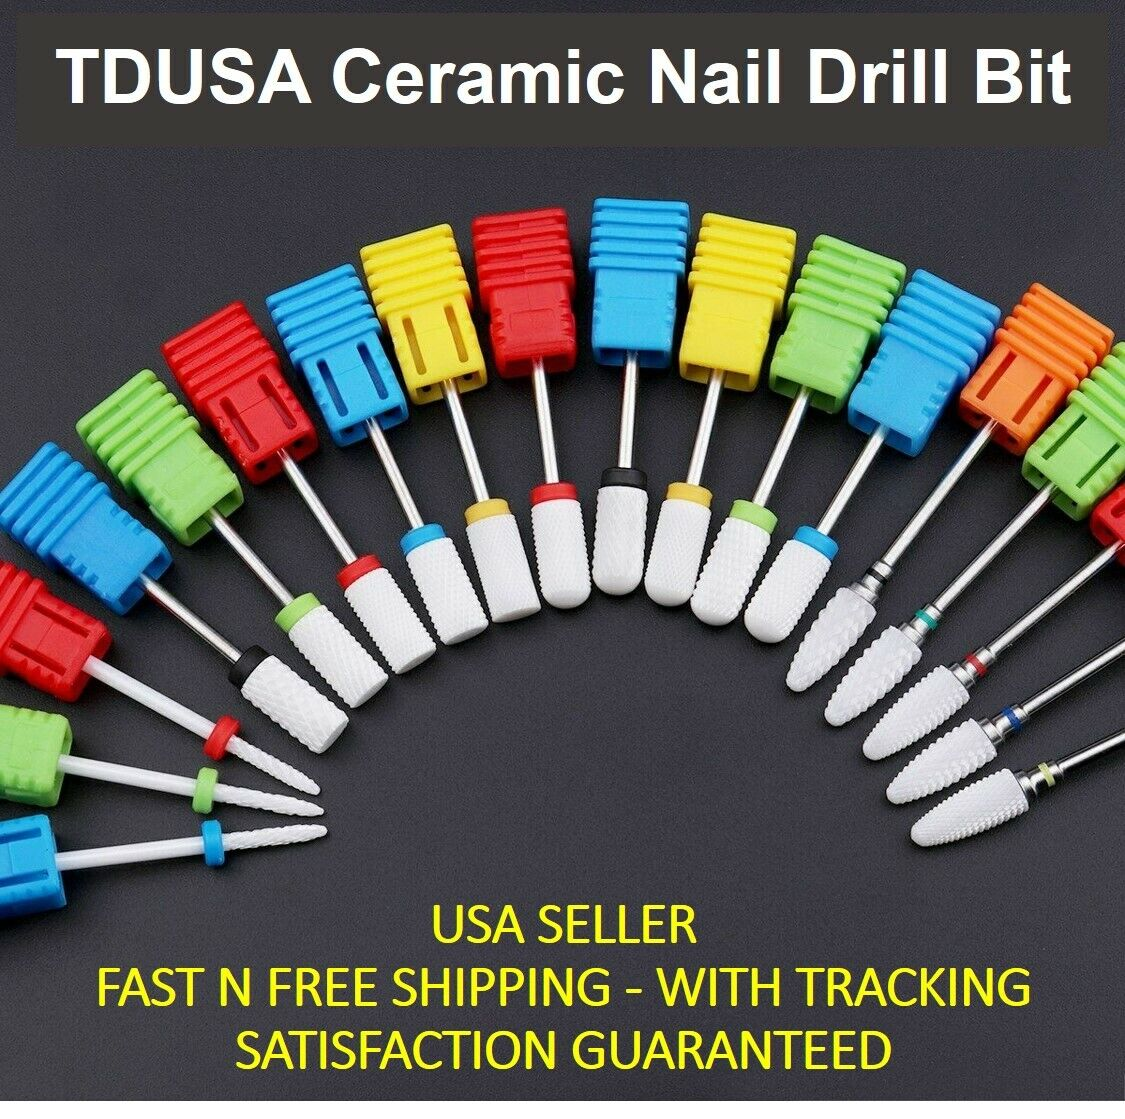 TDUSA CERAMIC NAIL DRILL BIT FOR PROS - FLAT HEAD, SMOOTH TO